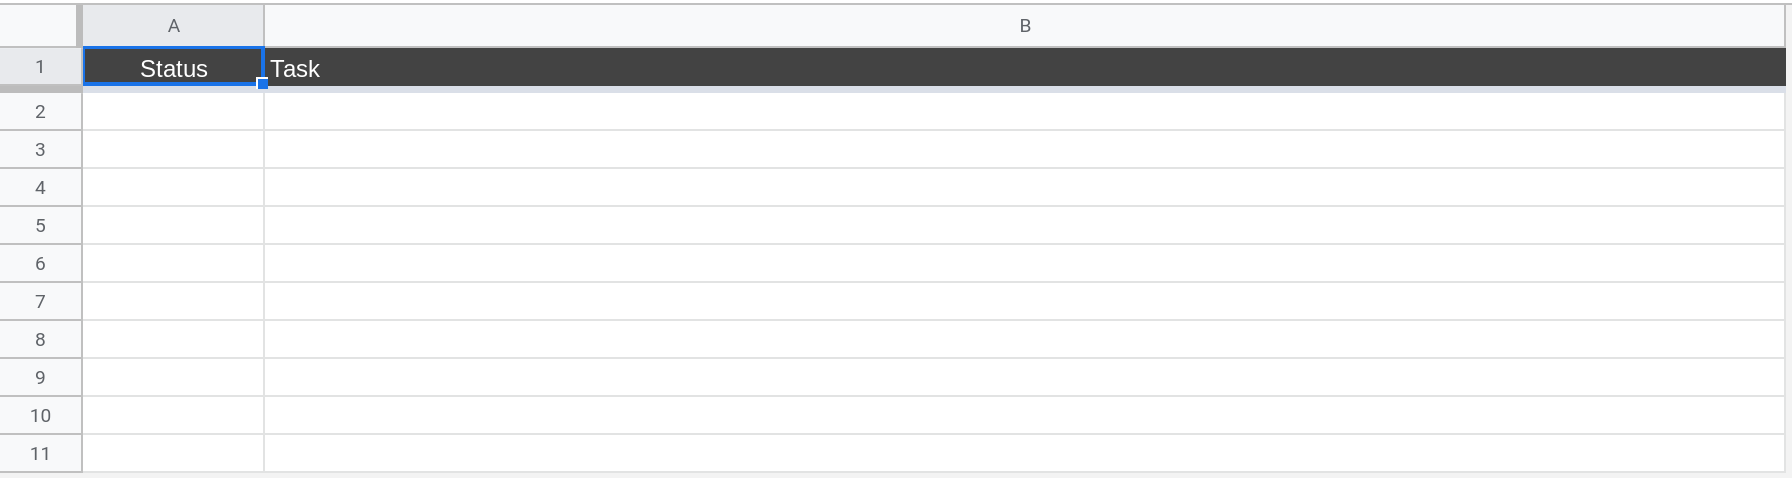 A screenshot of Google Sheets where the spreadsheet has 2 columns: Status and Task.